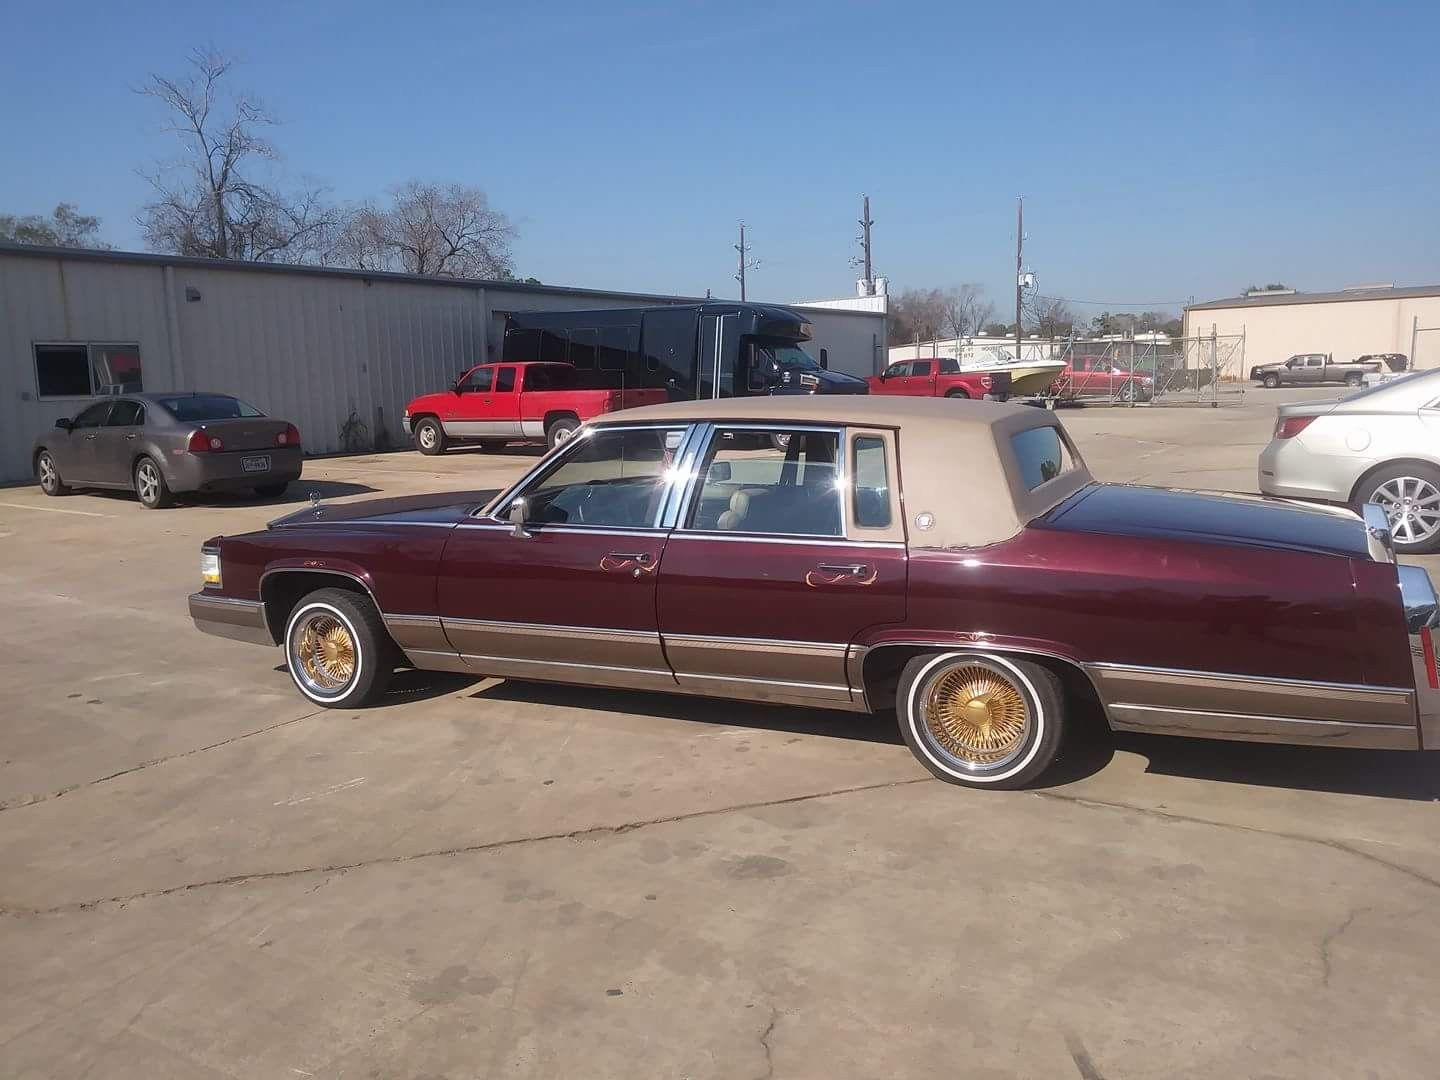 92 Cadillac Fleetwood Brougham Low